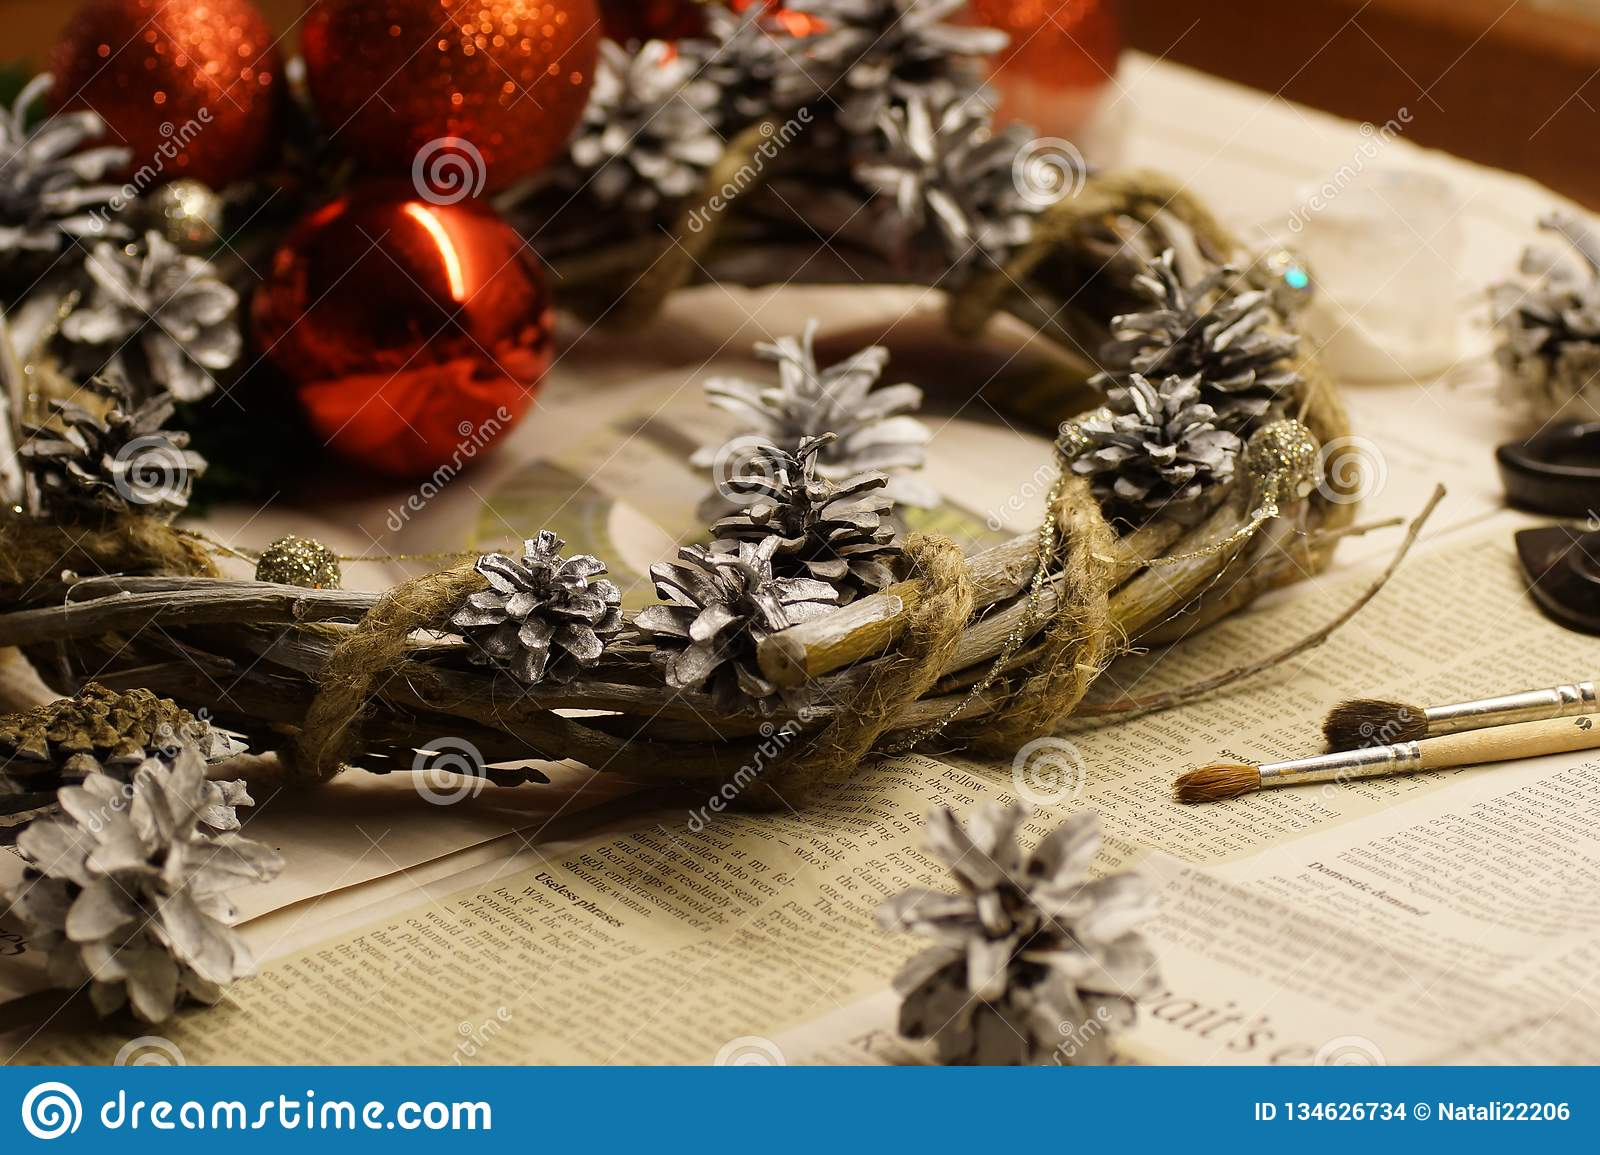 The process of making a Christmas wreath with his own hands. Advent wreath, or Advent crown, is a Christian tradition